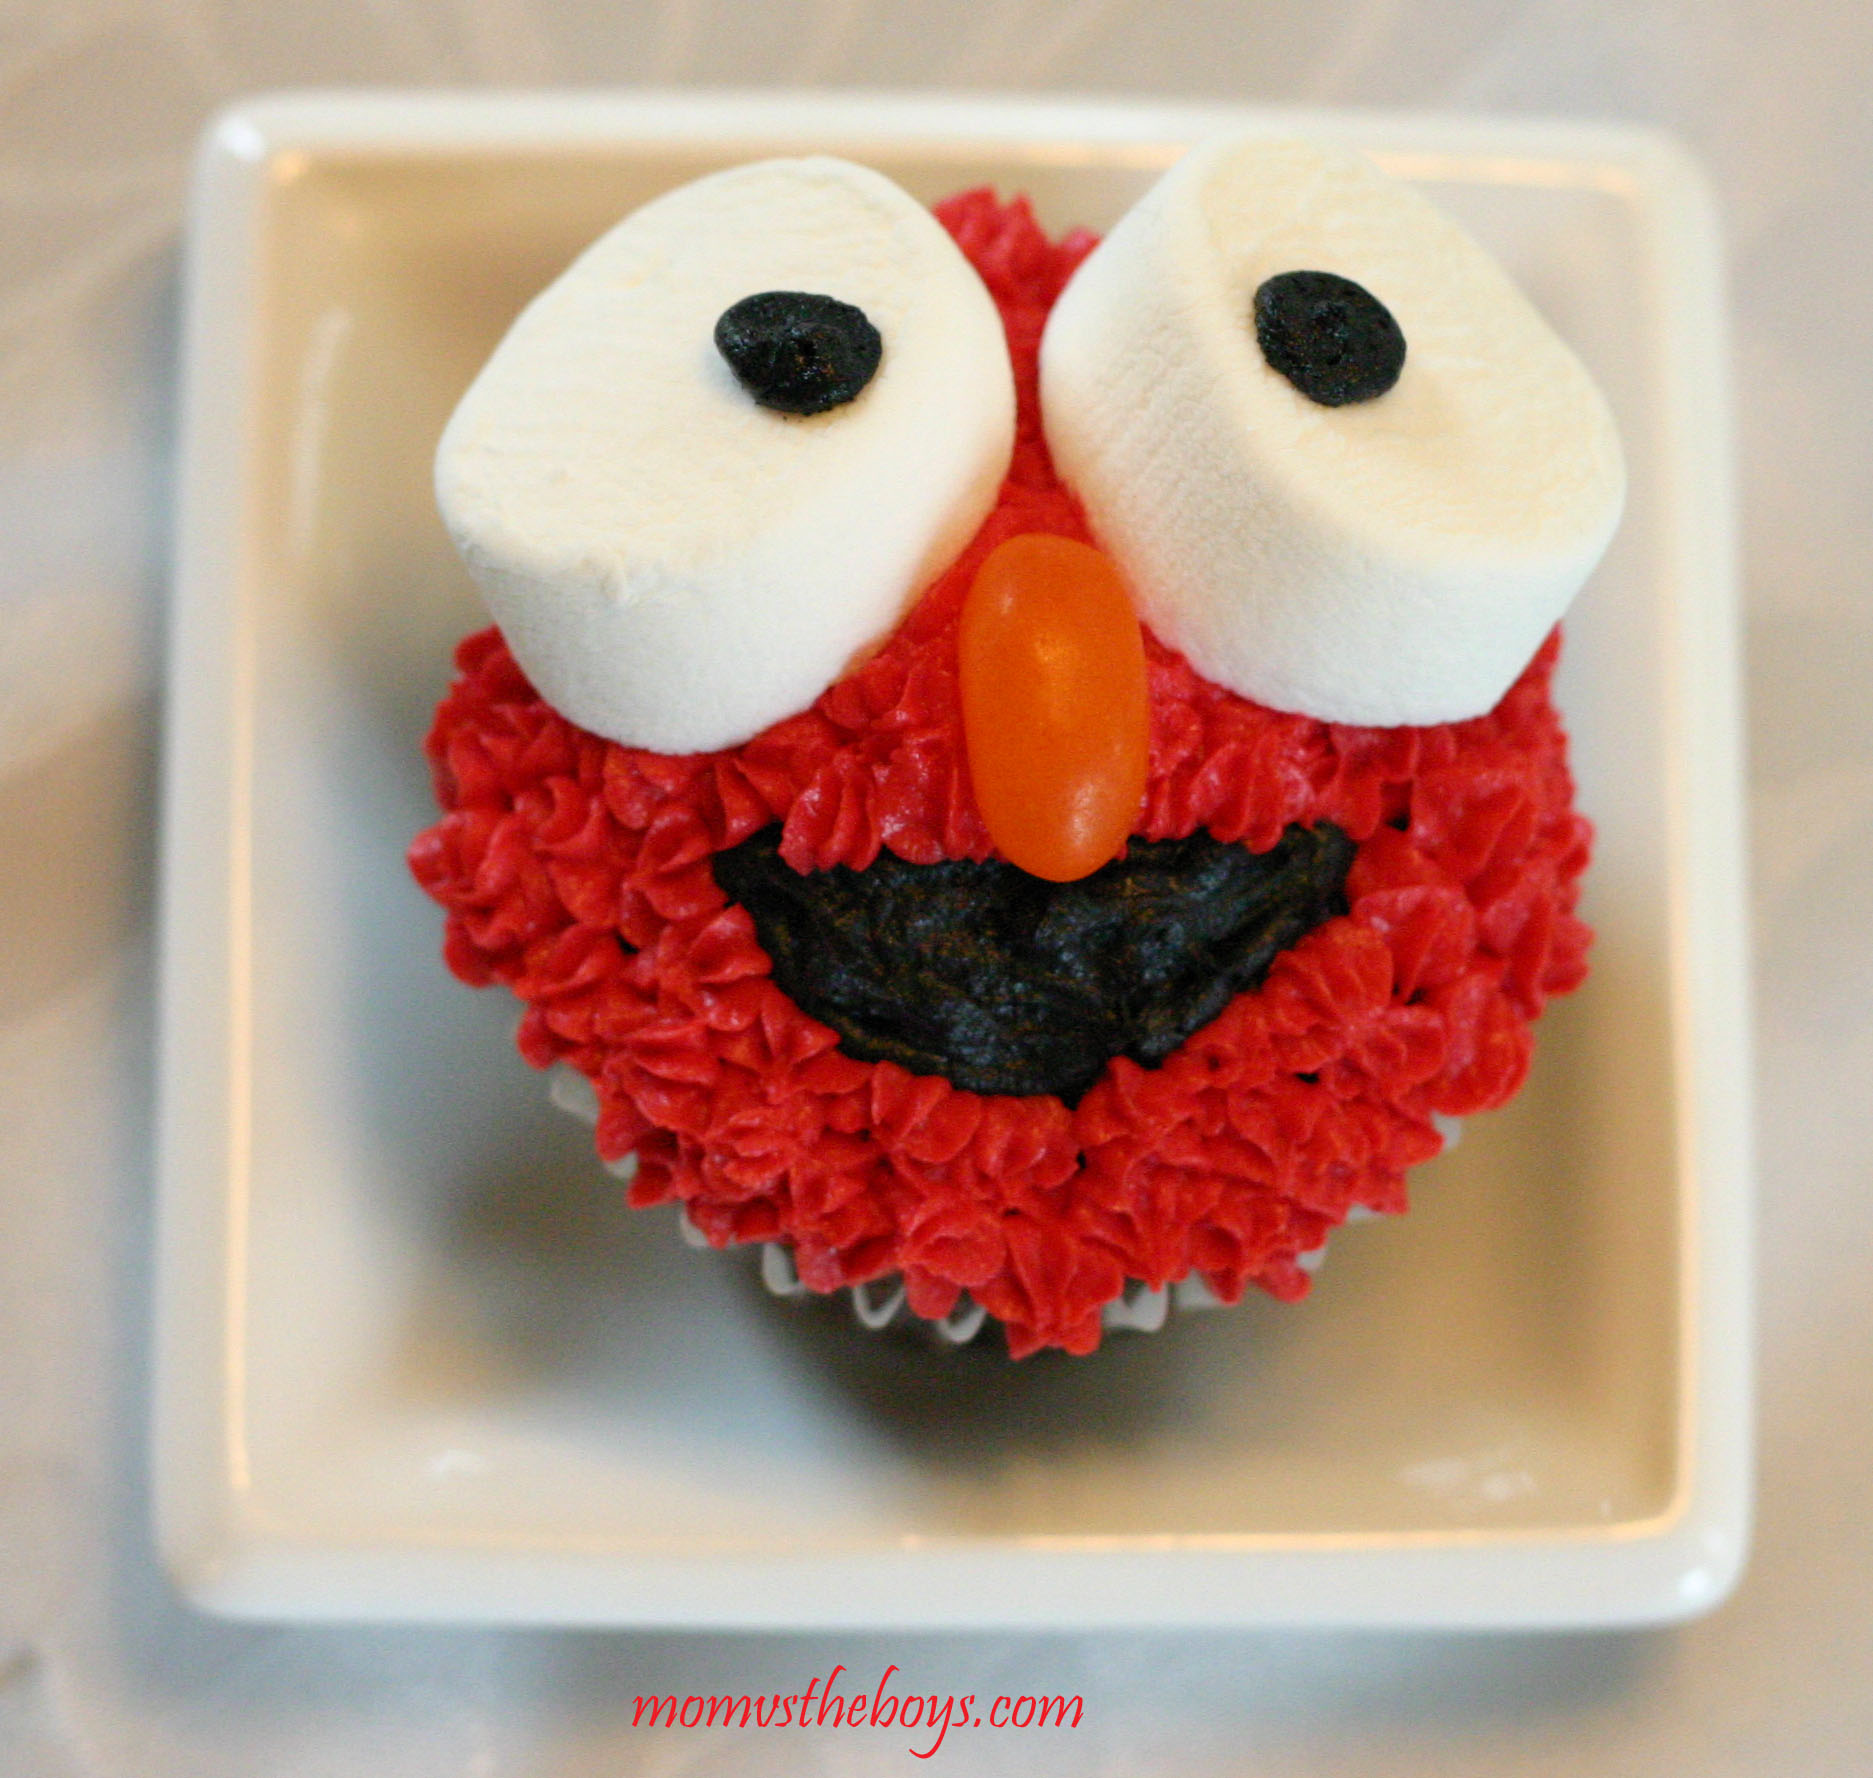 Elmo Cupcakes. Elmo Cupcakes   Mom vs the Boys